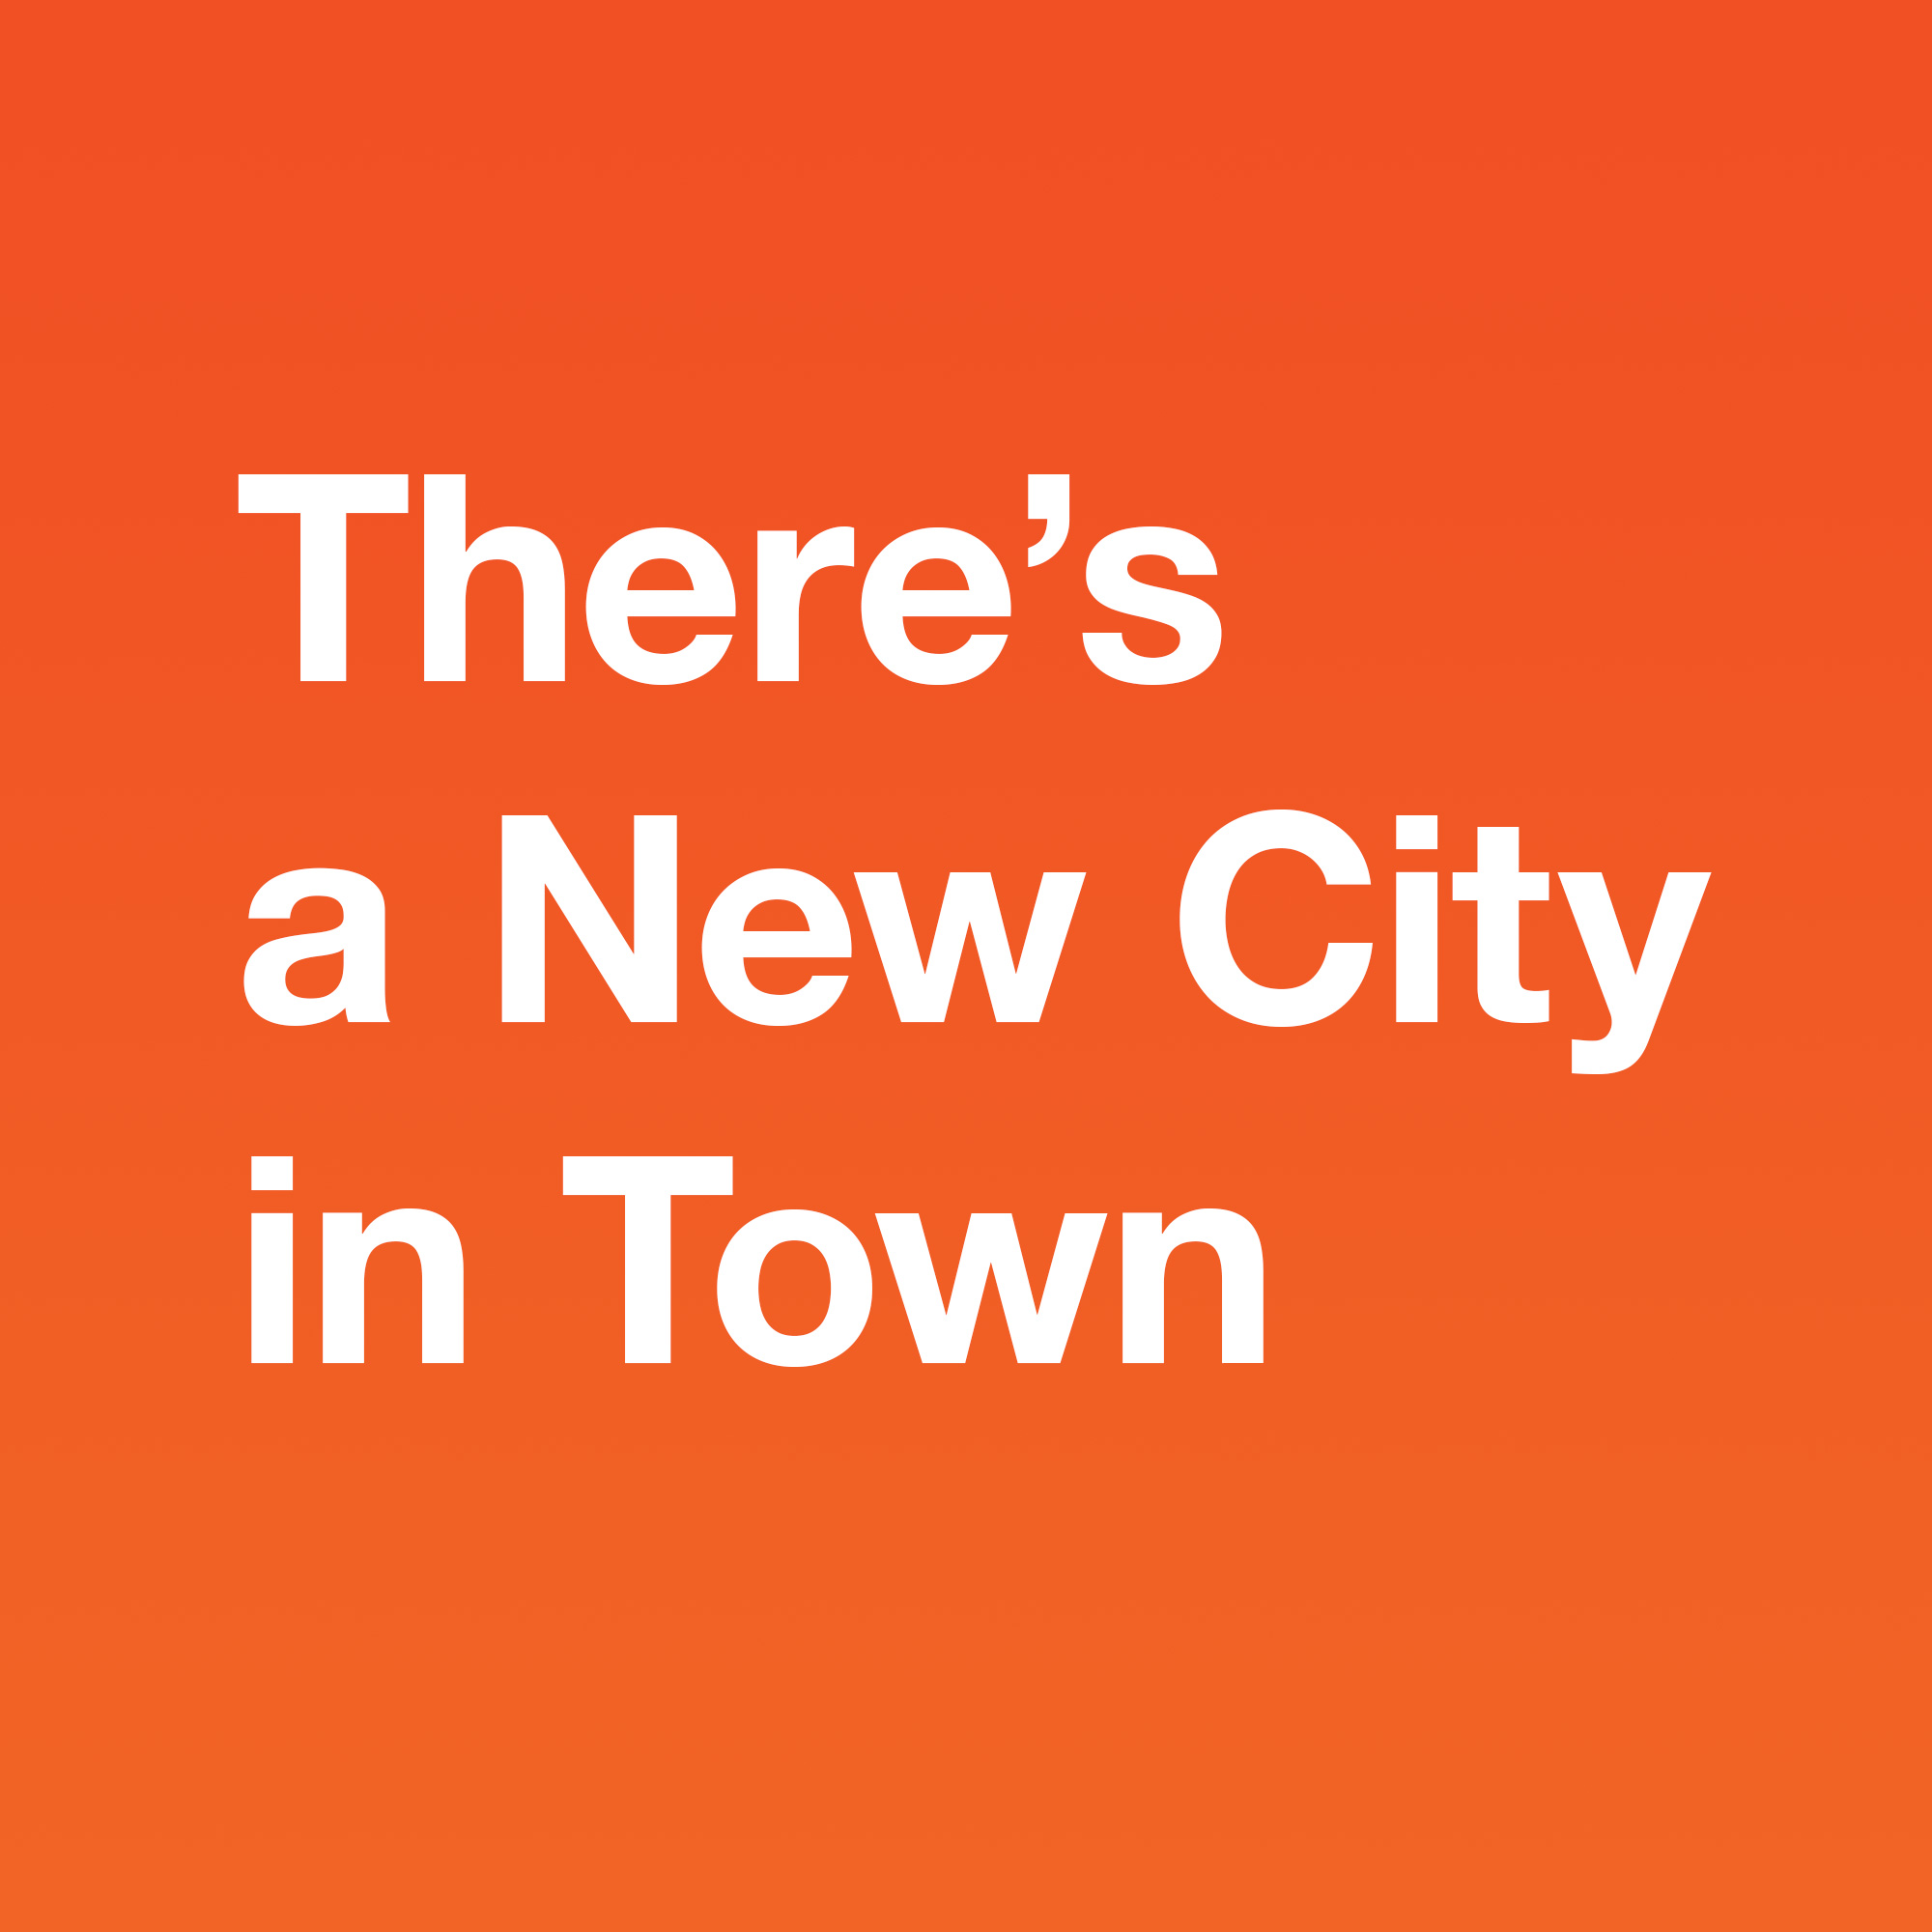 There's a New City In Town text box